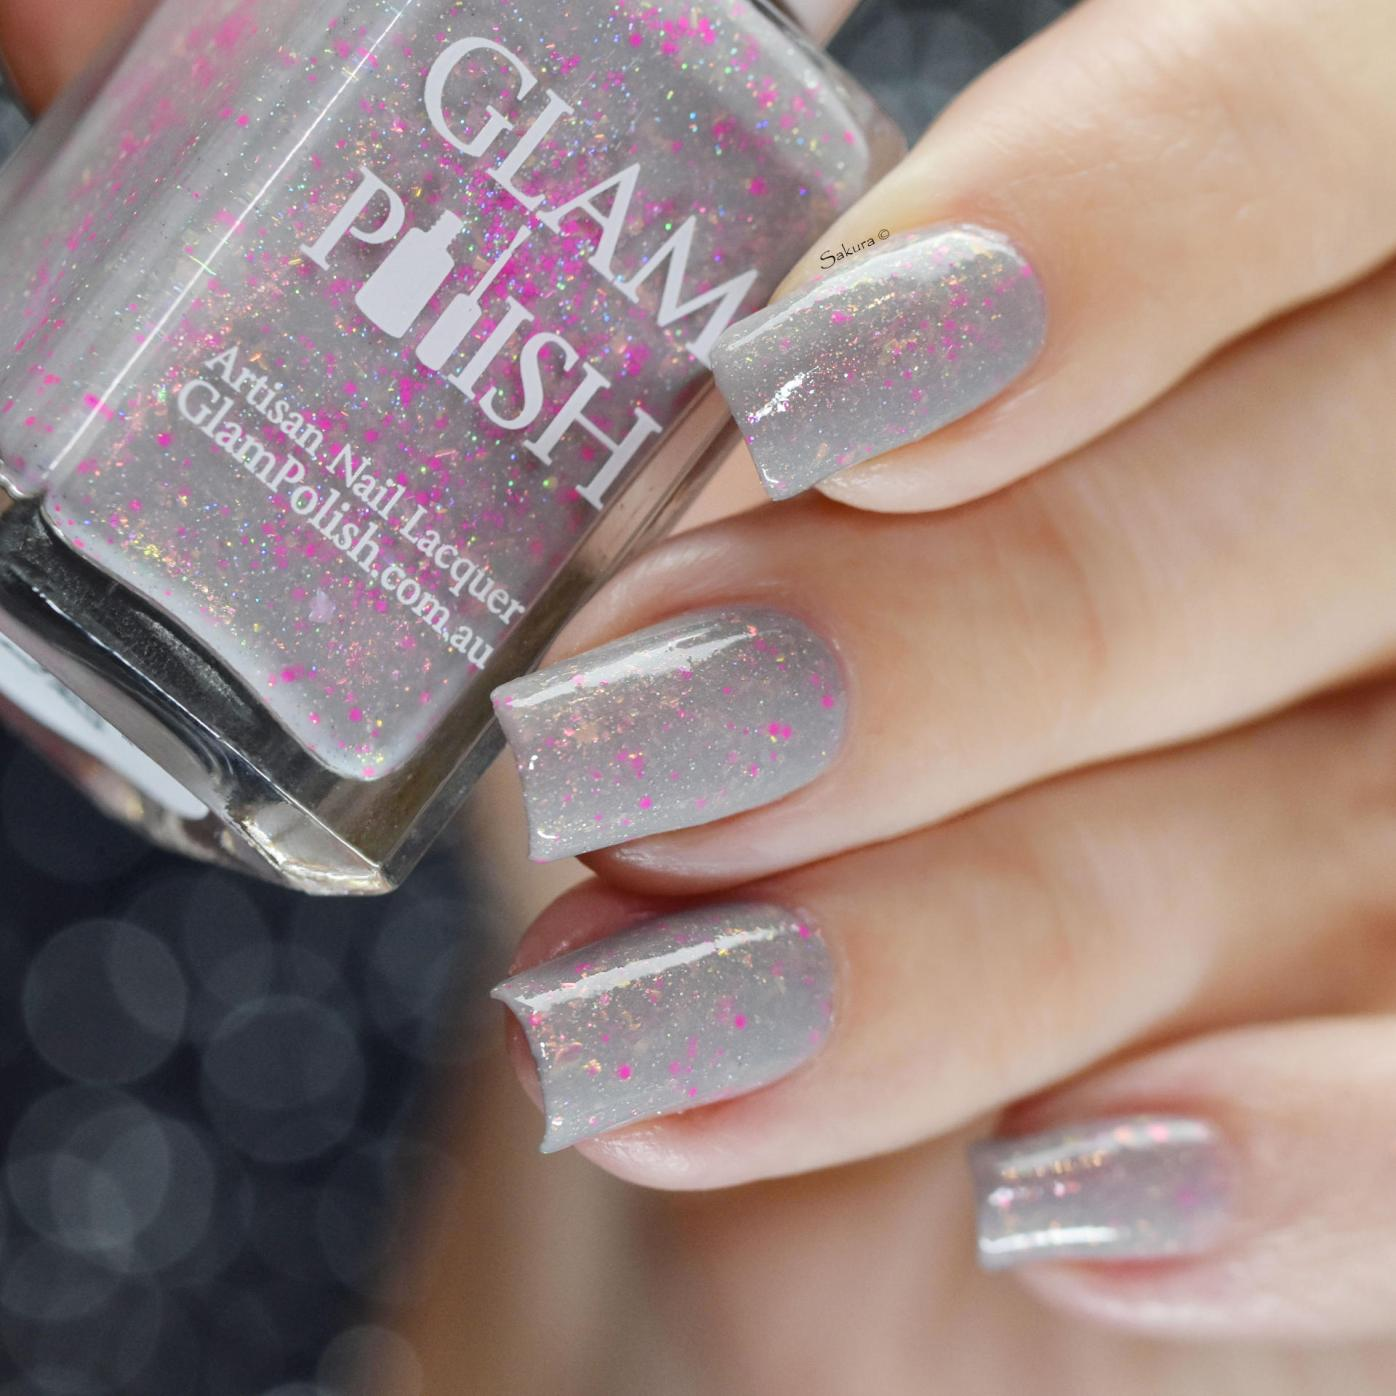 GLAMPOLISH To The Moon And Back 2